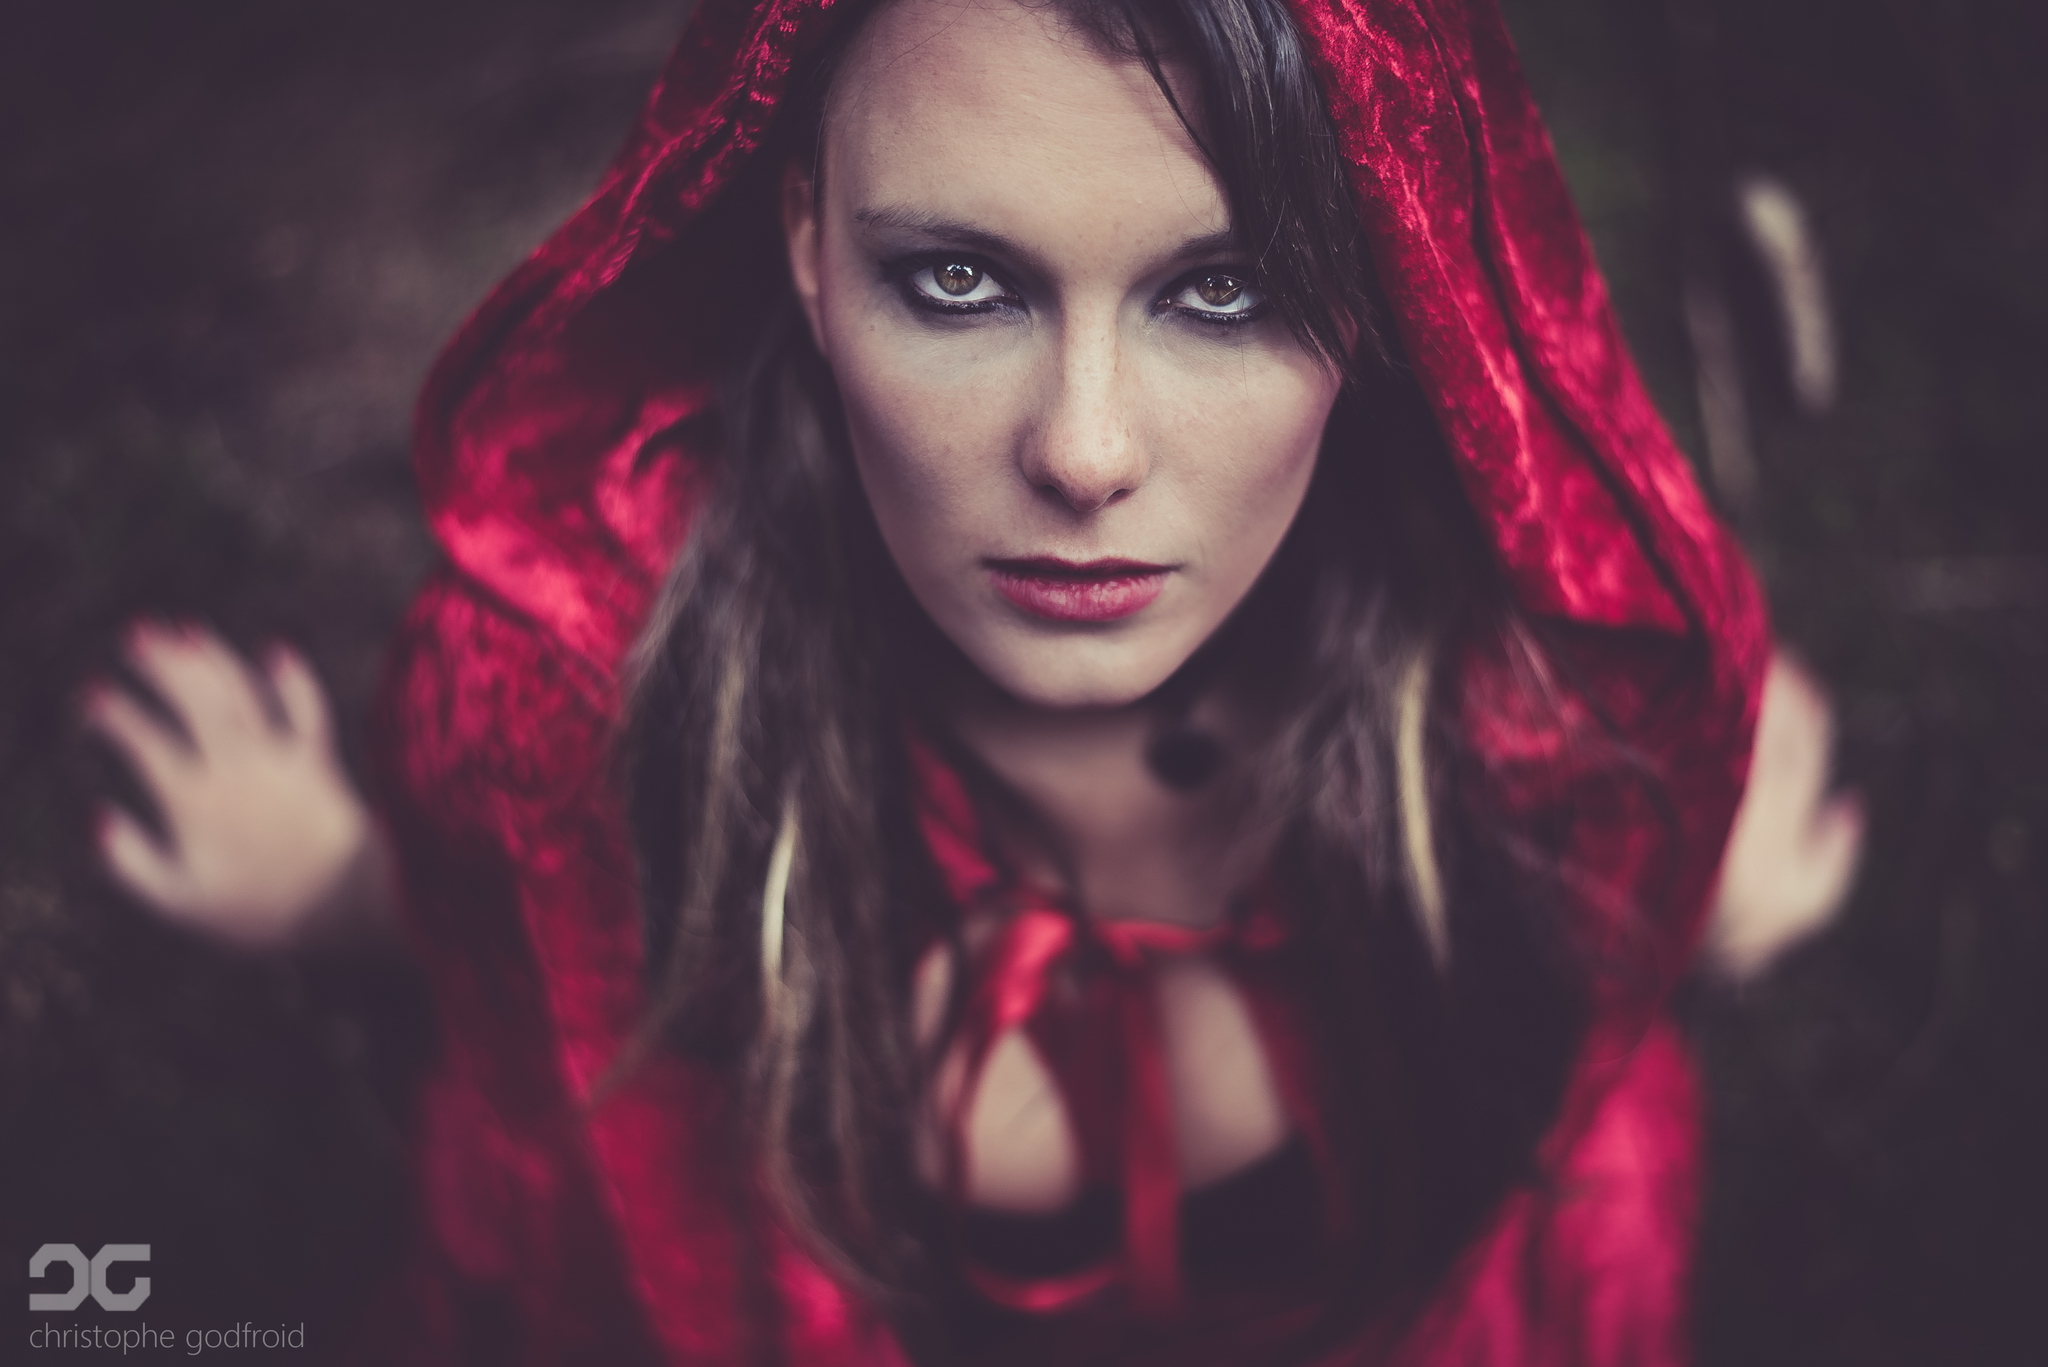 red riding h00d (n0t Anym0re)